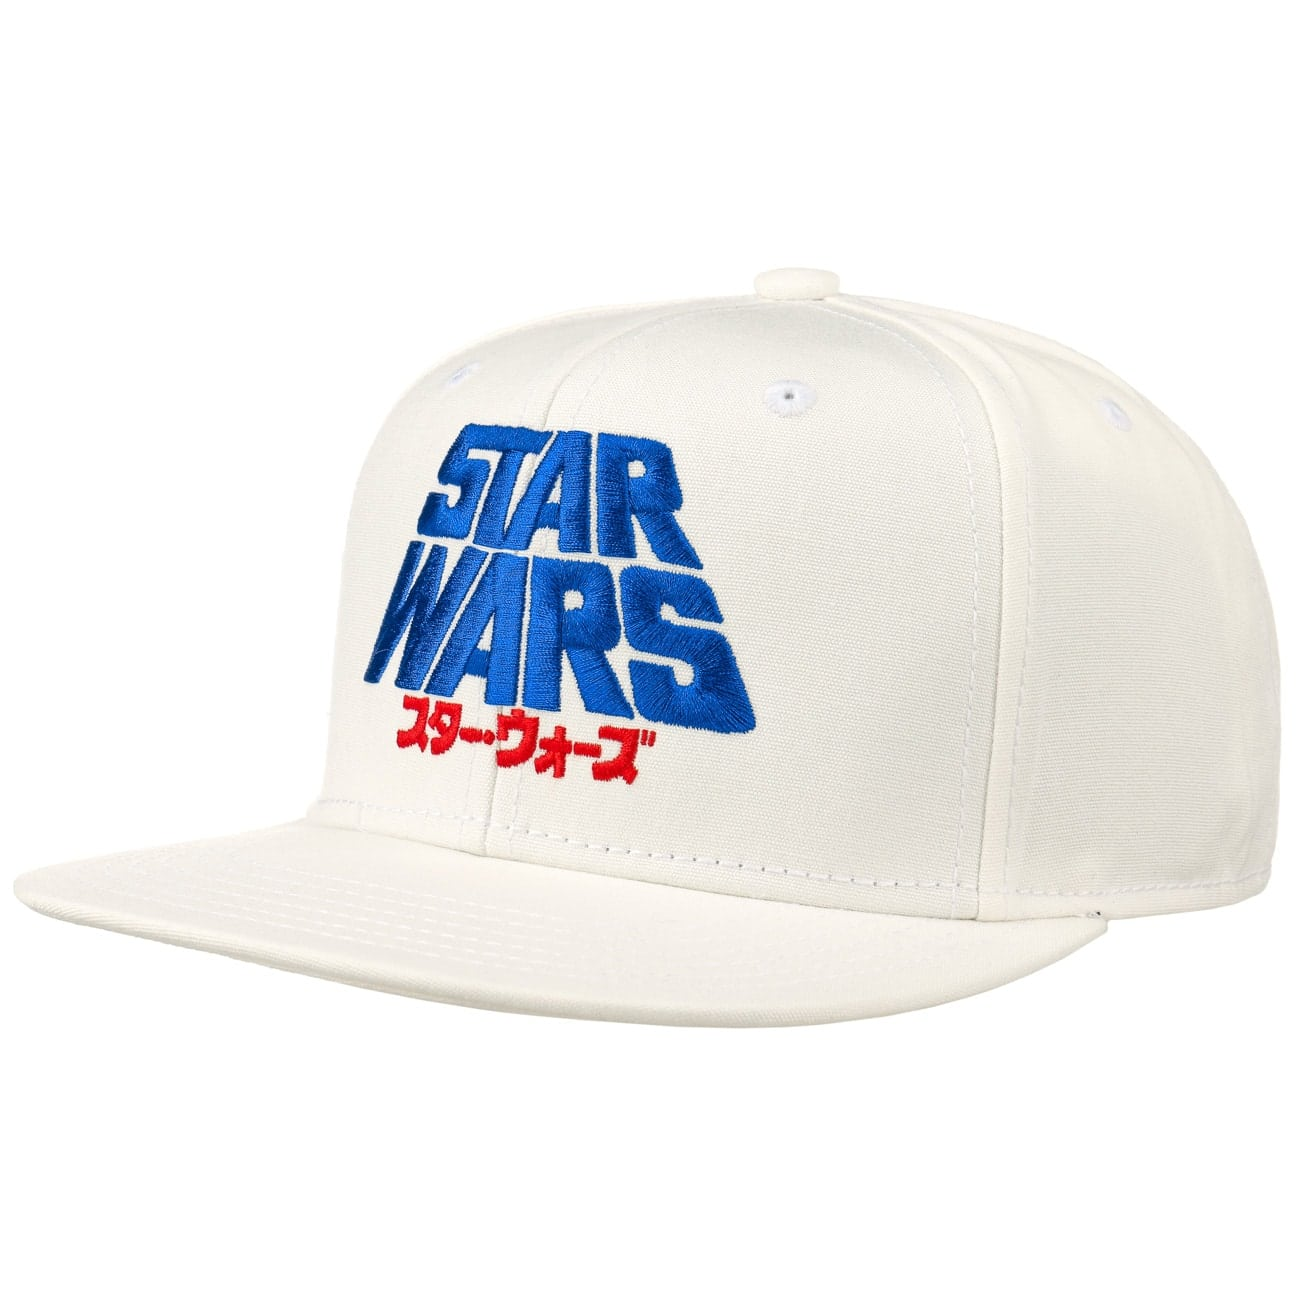 Gorra Star Wars Nippon by dedicated  base cap